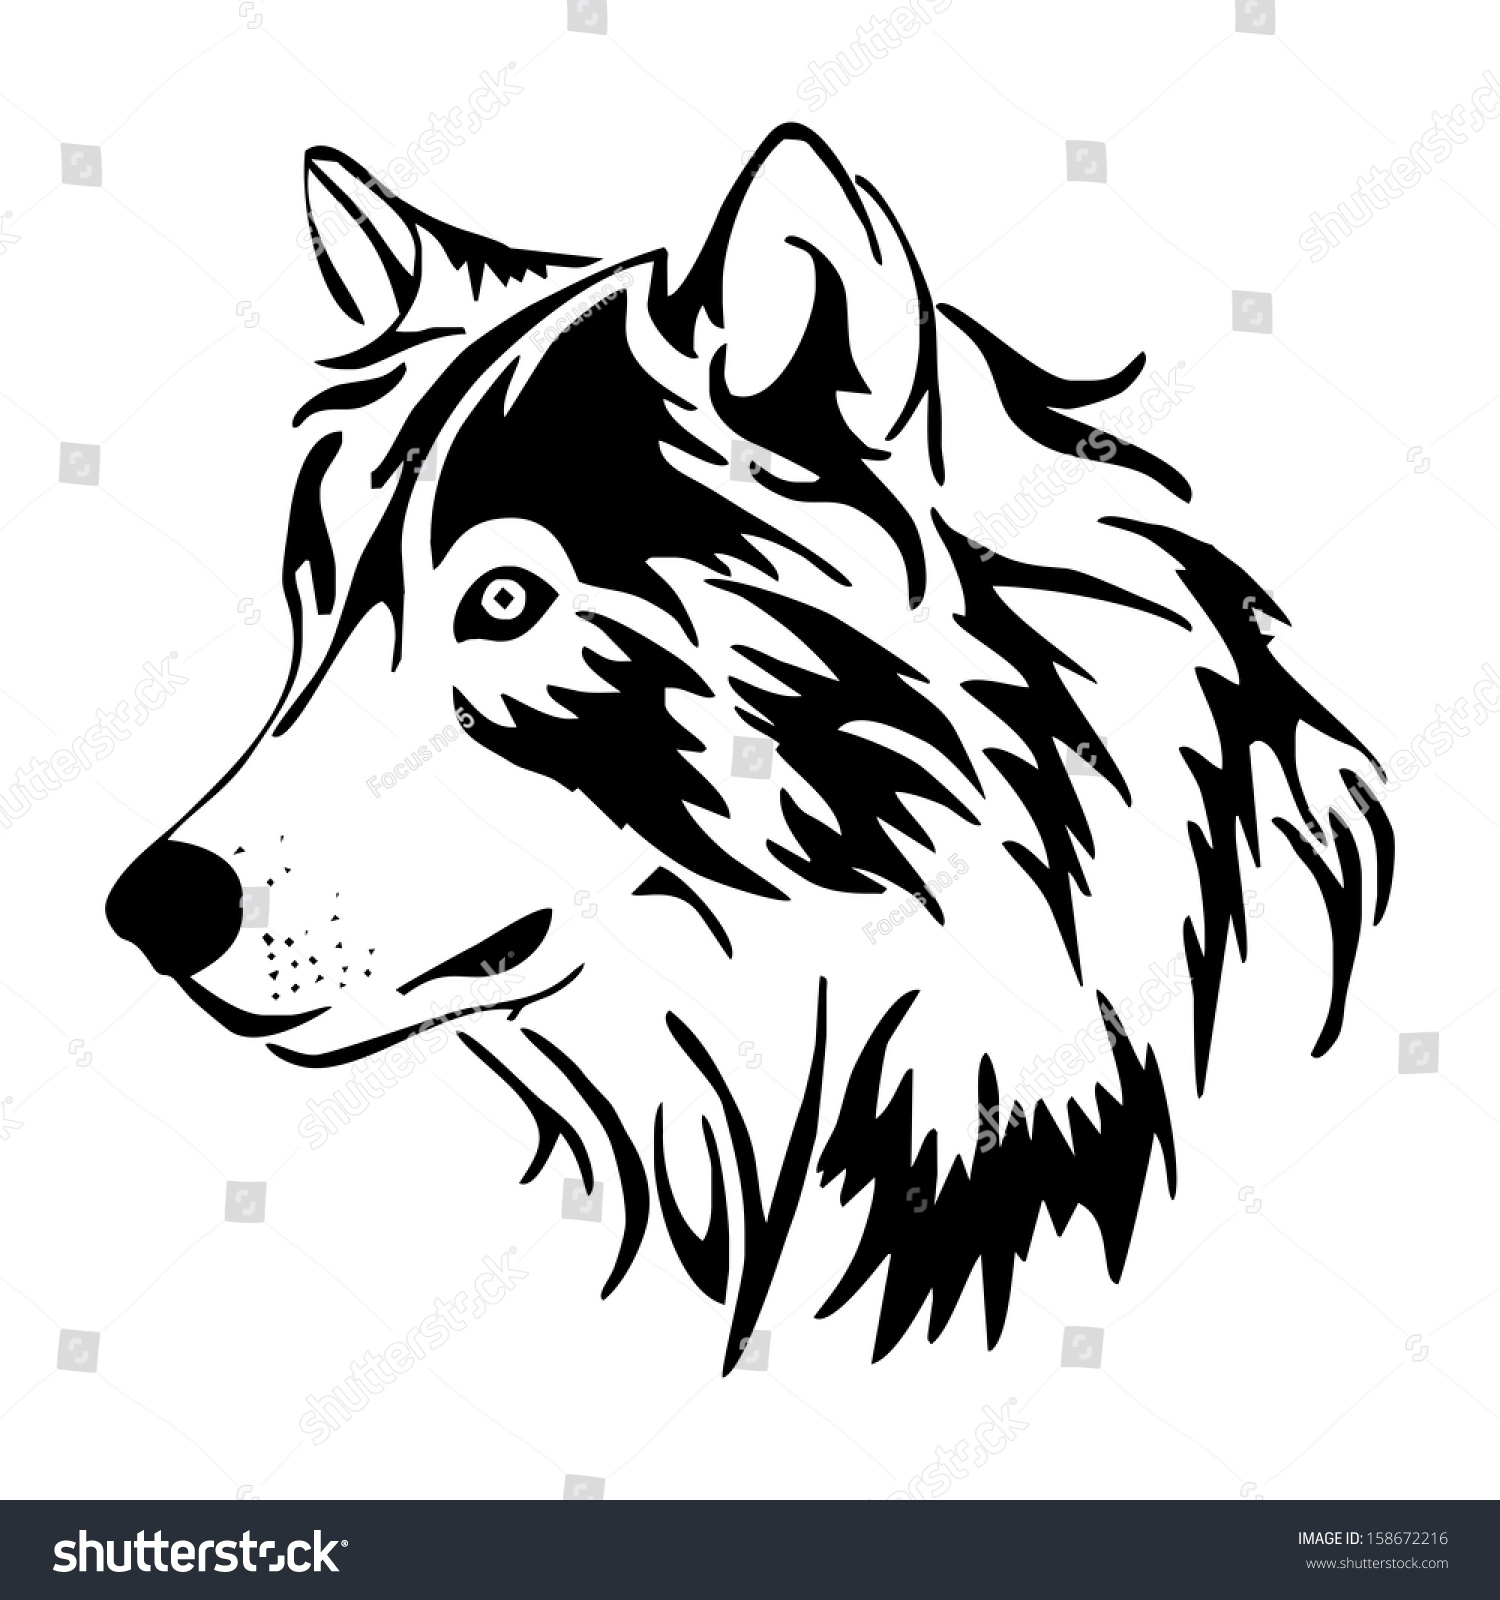 Wolf Stock Images, Royalty-Free Images & Vectors ...